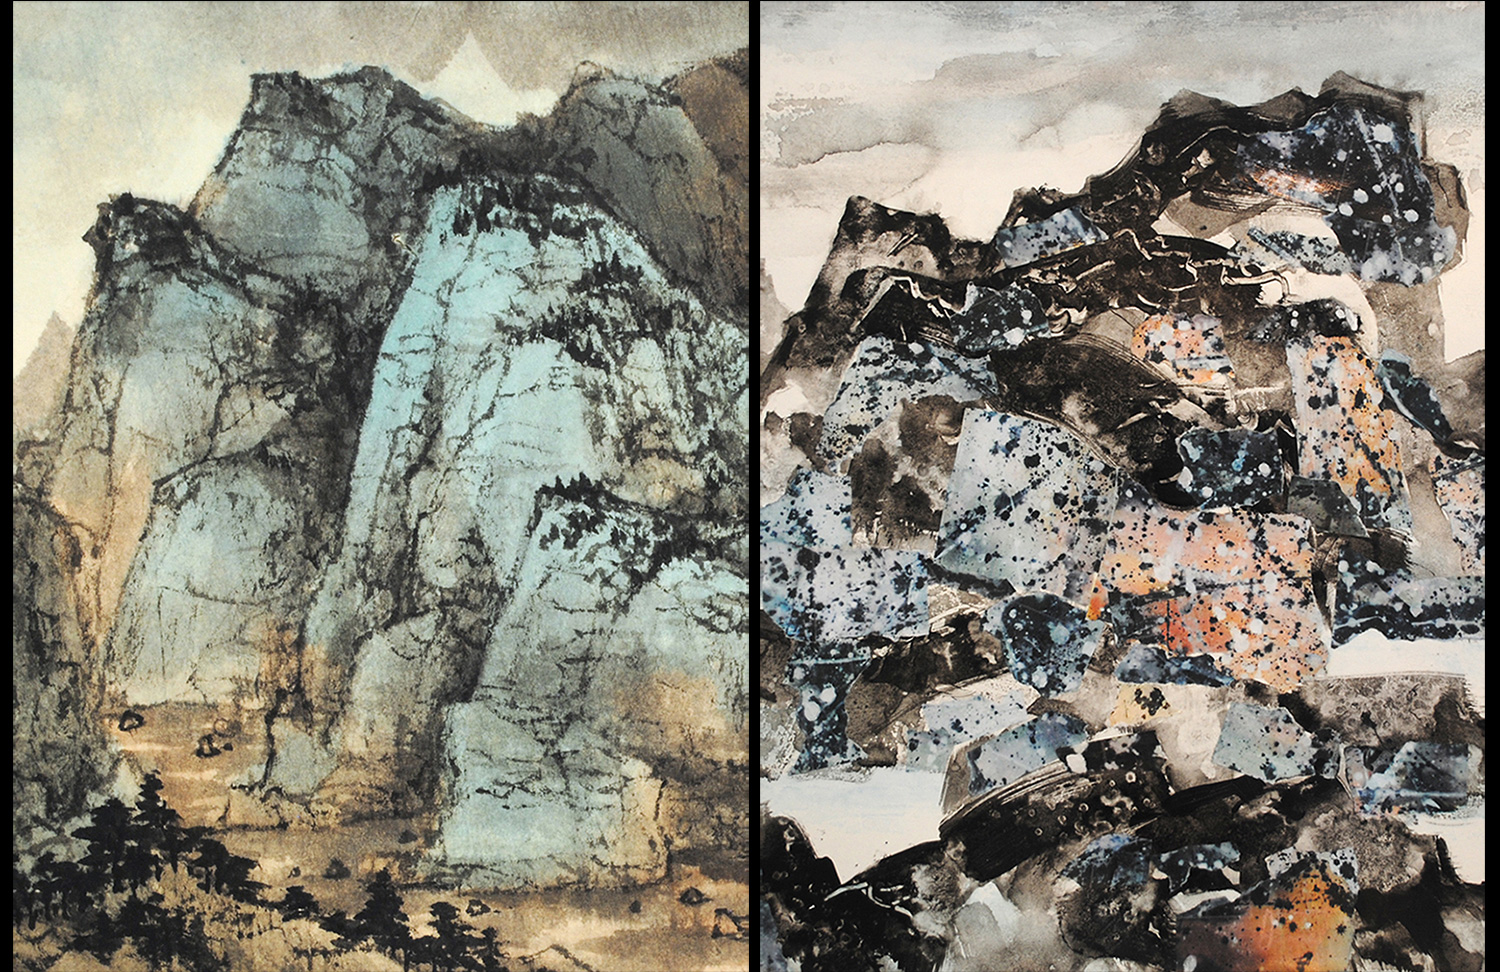 """Freda Lee-McCann, Peaceful Mountains (15""""x18"""") & Storm Approaching (18""""x18"""") , Ink & Watercolor, Mixed media,2017"""